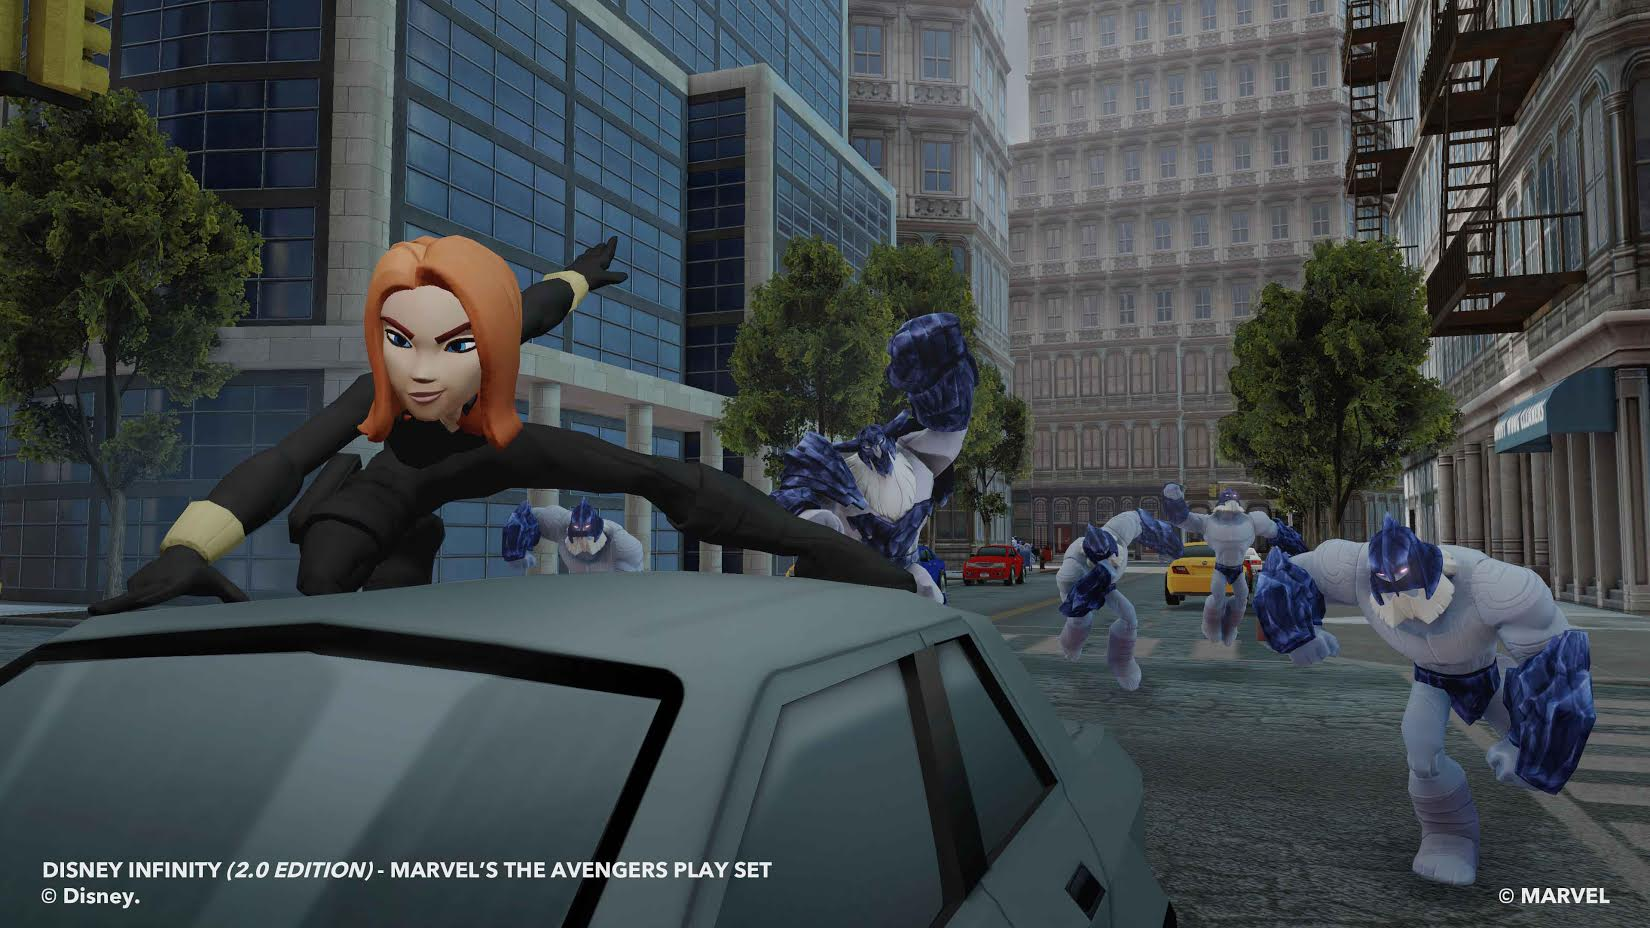 Black Widow is on a mission in Disney Infinity 2.0